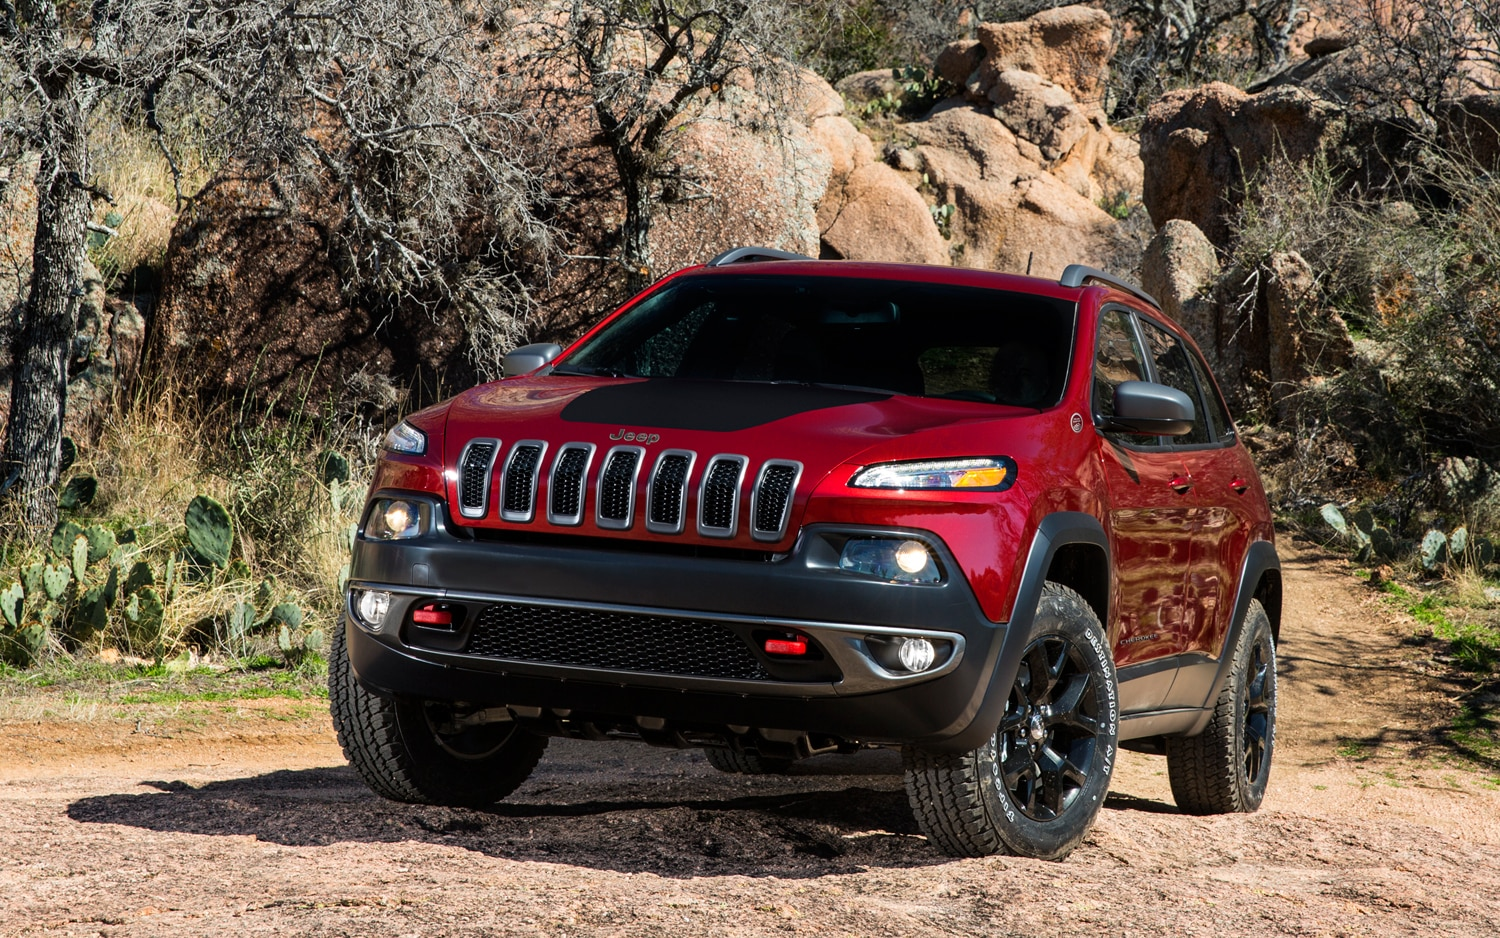 2014 Jeep Cherokee Trailhawk front view 2